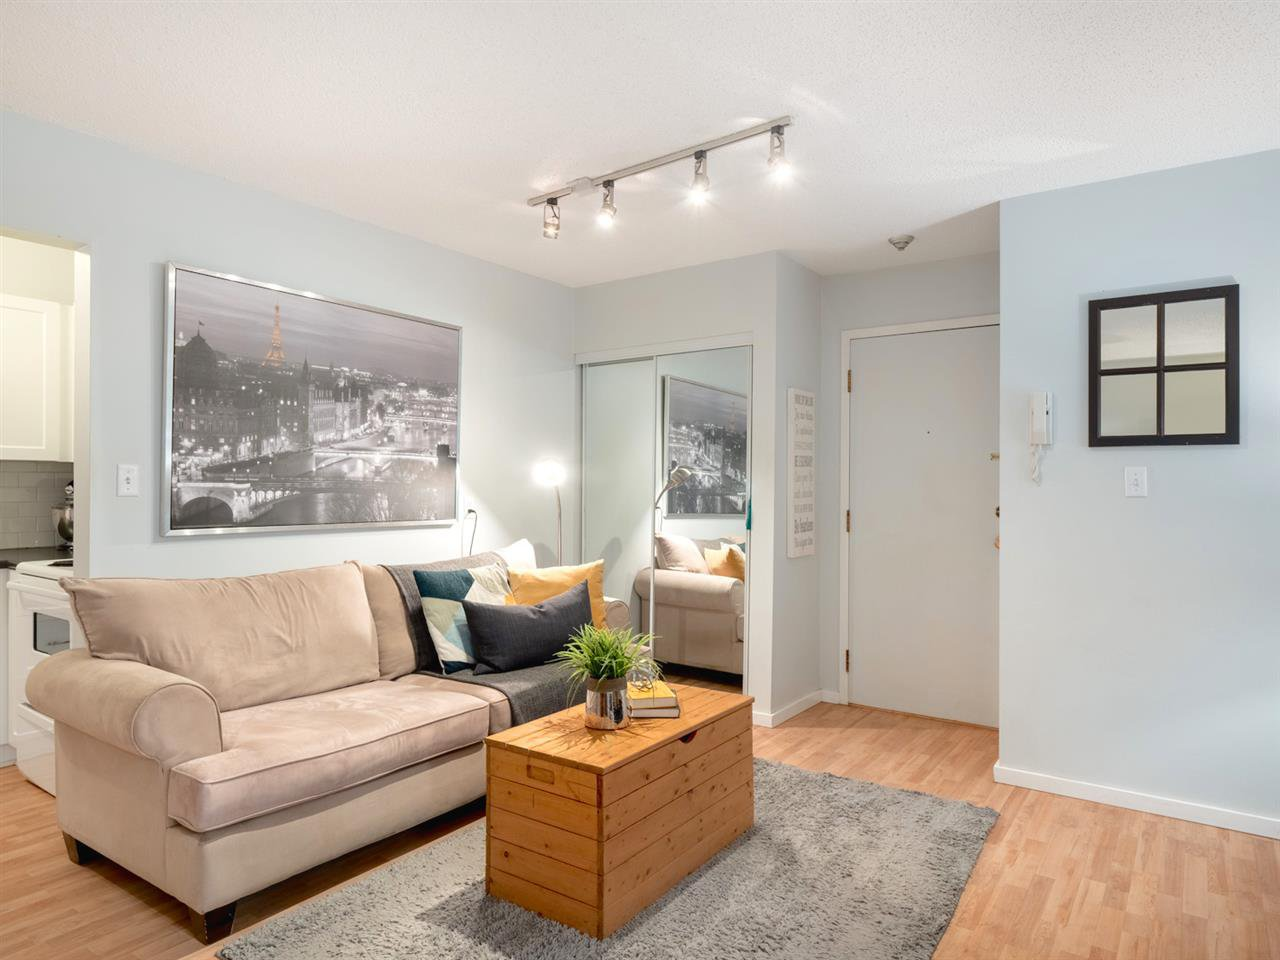 Photo 6: Photos: 101 8645 OSLER Street in Vancouver: Marpole Condo for sale (Vancouver West)  : MLS®# R2311470